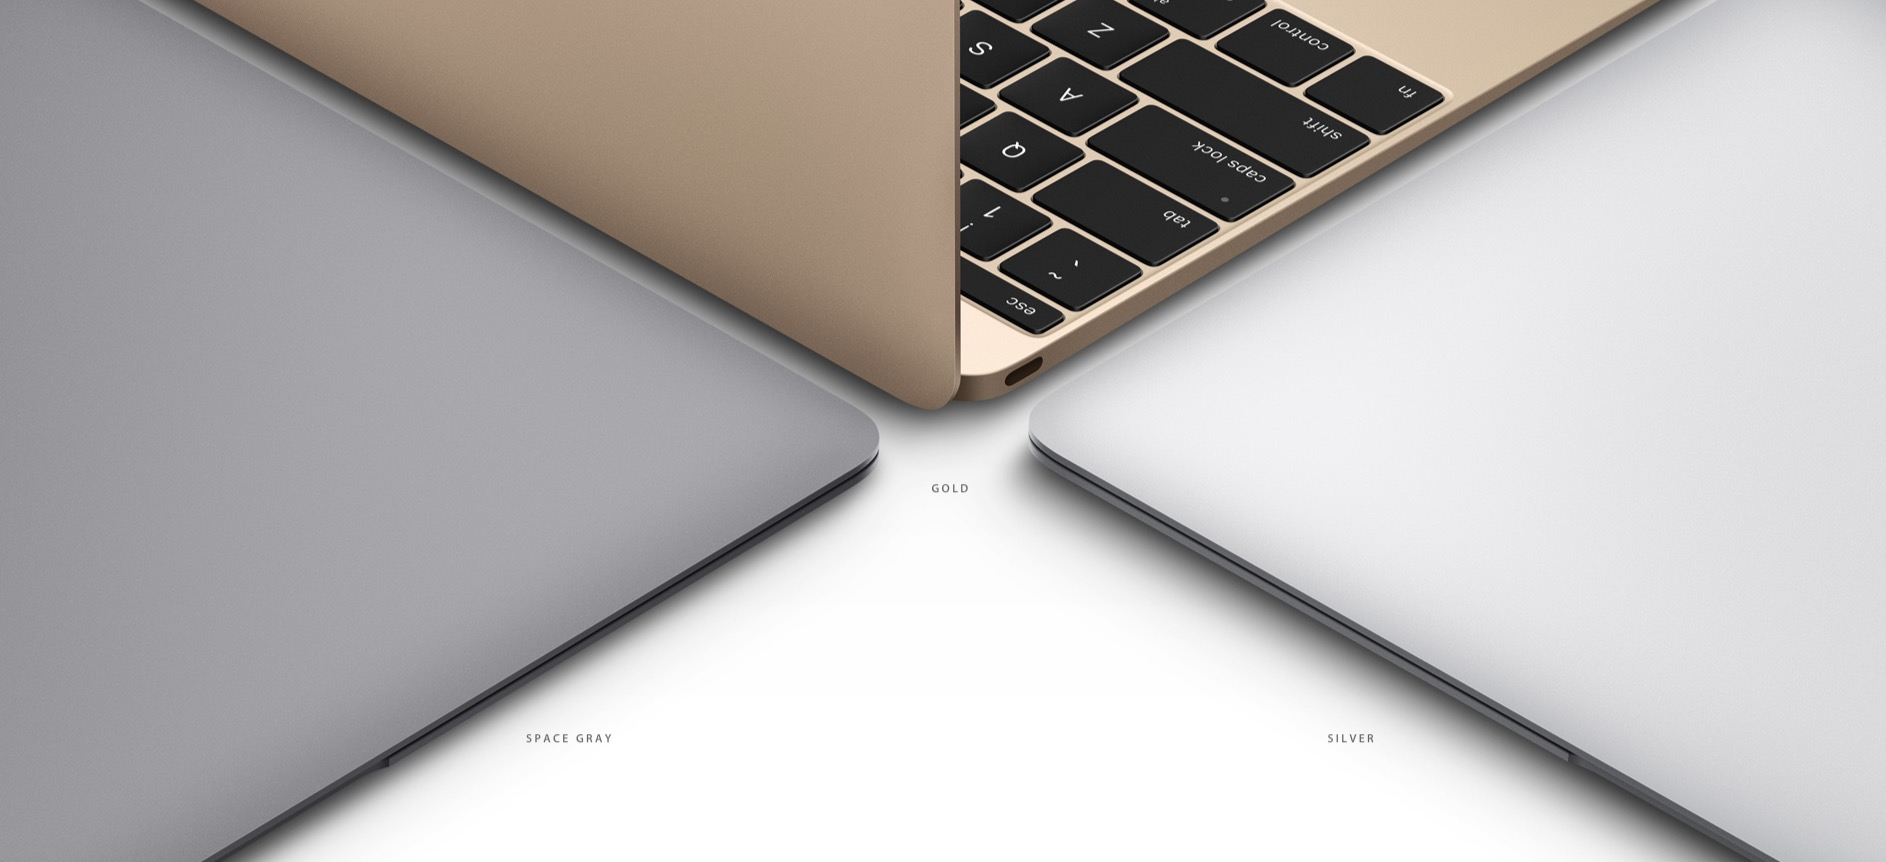 New Apple MacBook: 5 Features that Make It Special